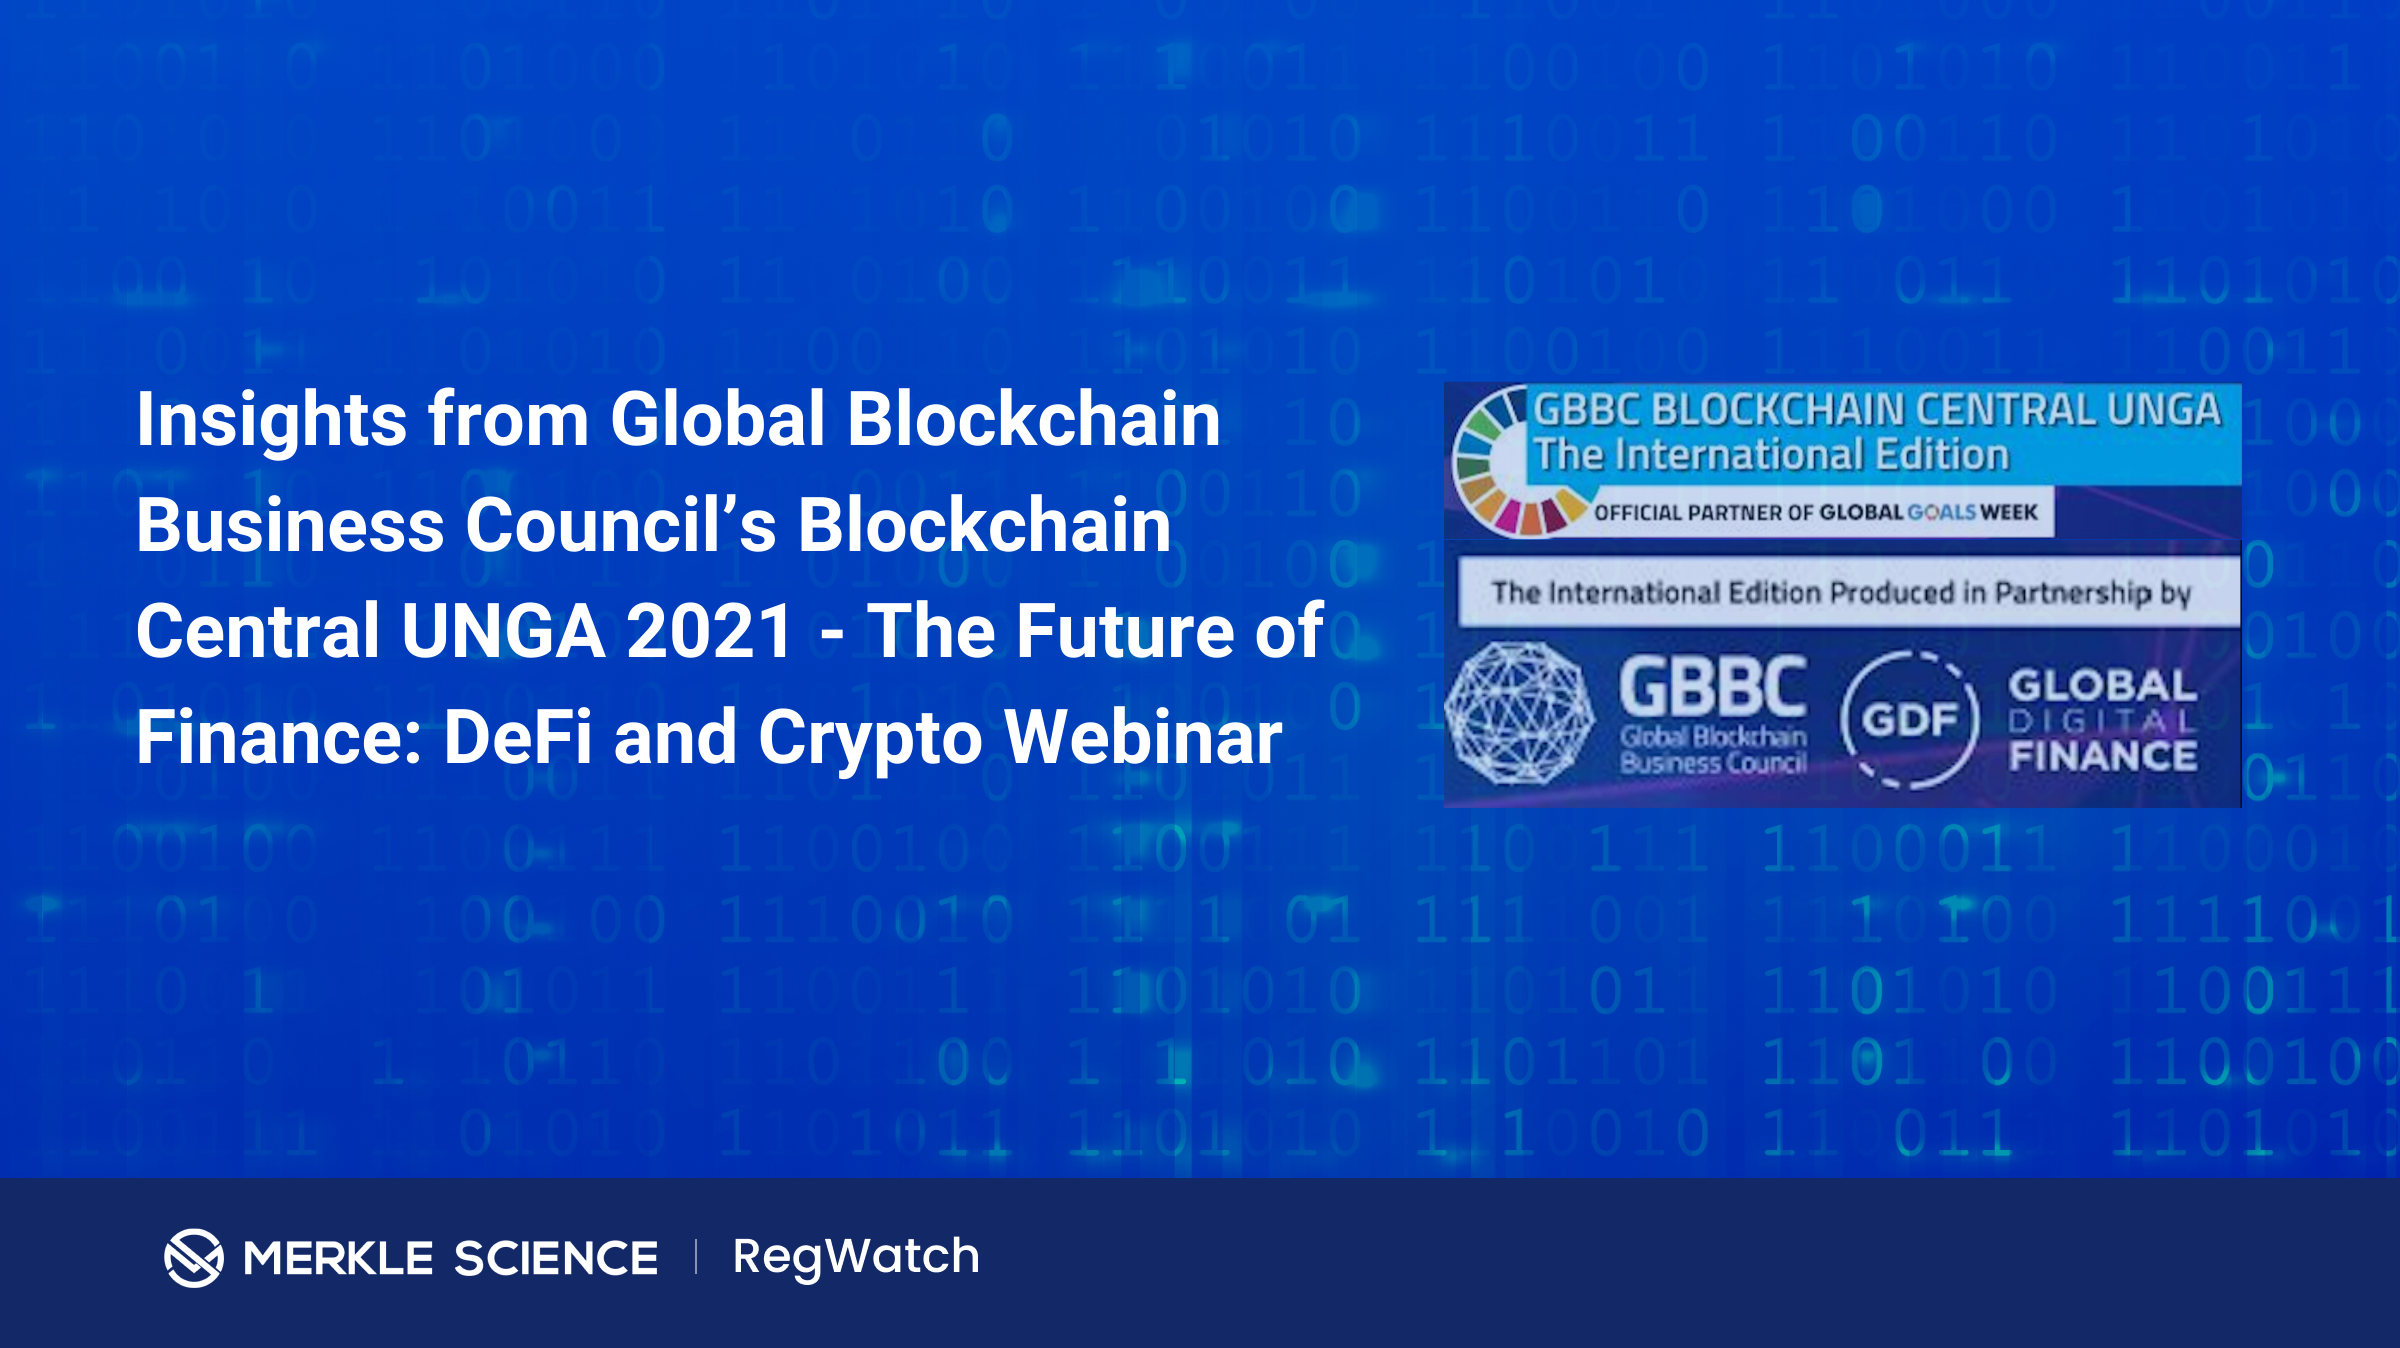 3 Key Takeaways from Global Blockchain Business Council's Blockchain Central UNGA 2021 Session - The Future of Finance: DeFi and Crypto Webinar.